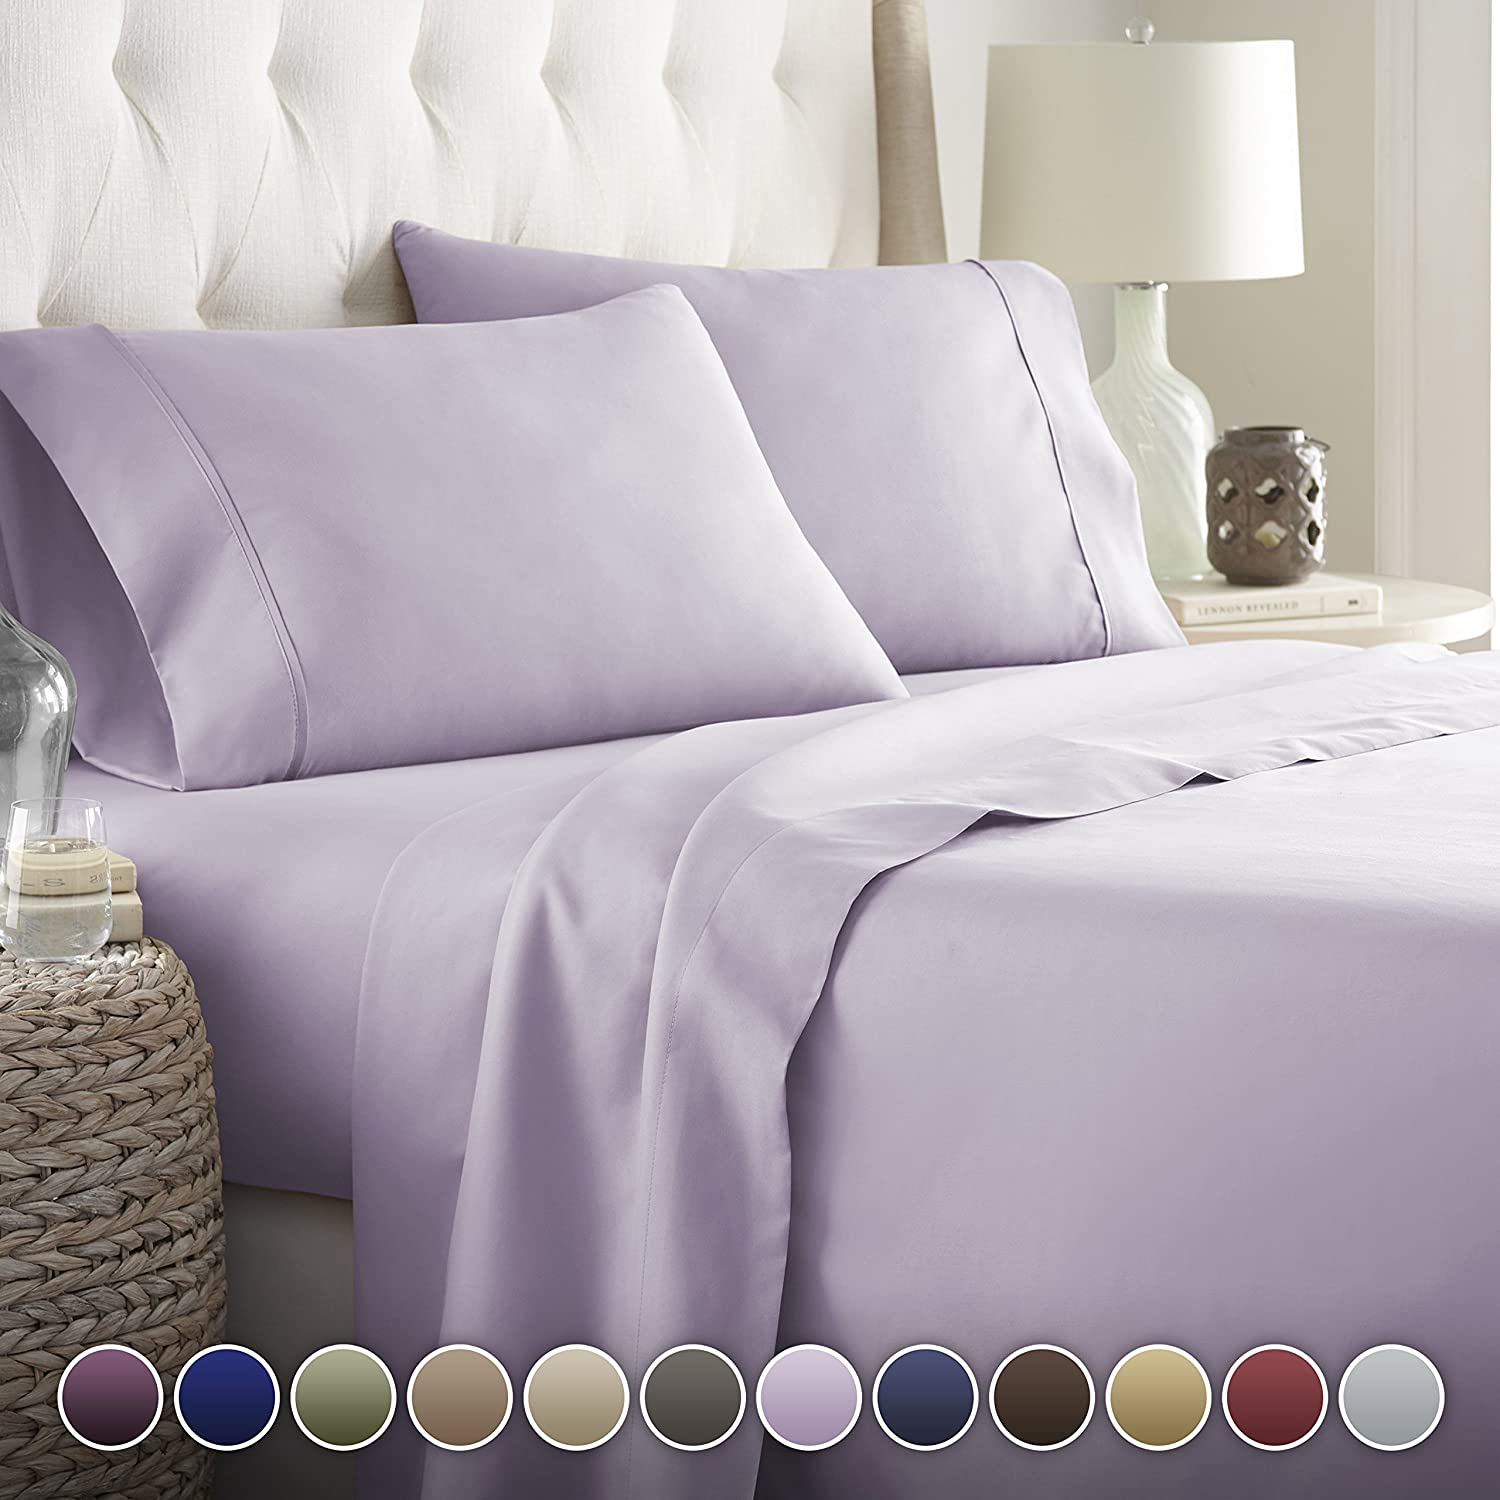 Hotel Luxury Bed Sheets Set Today! On Amazon Soft Bedding 1800 Series Platinum Collection-100%!Deep Pocket,Wrinkle & Fade Resistant (Calking,Lavender)